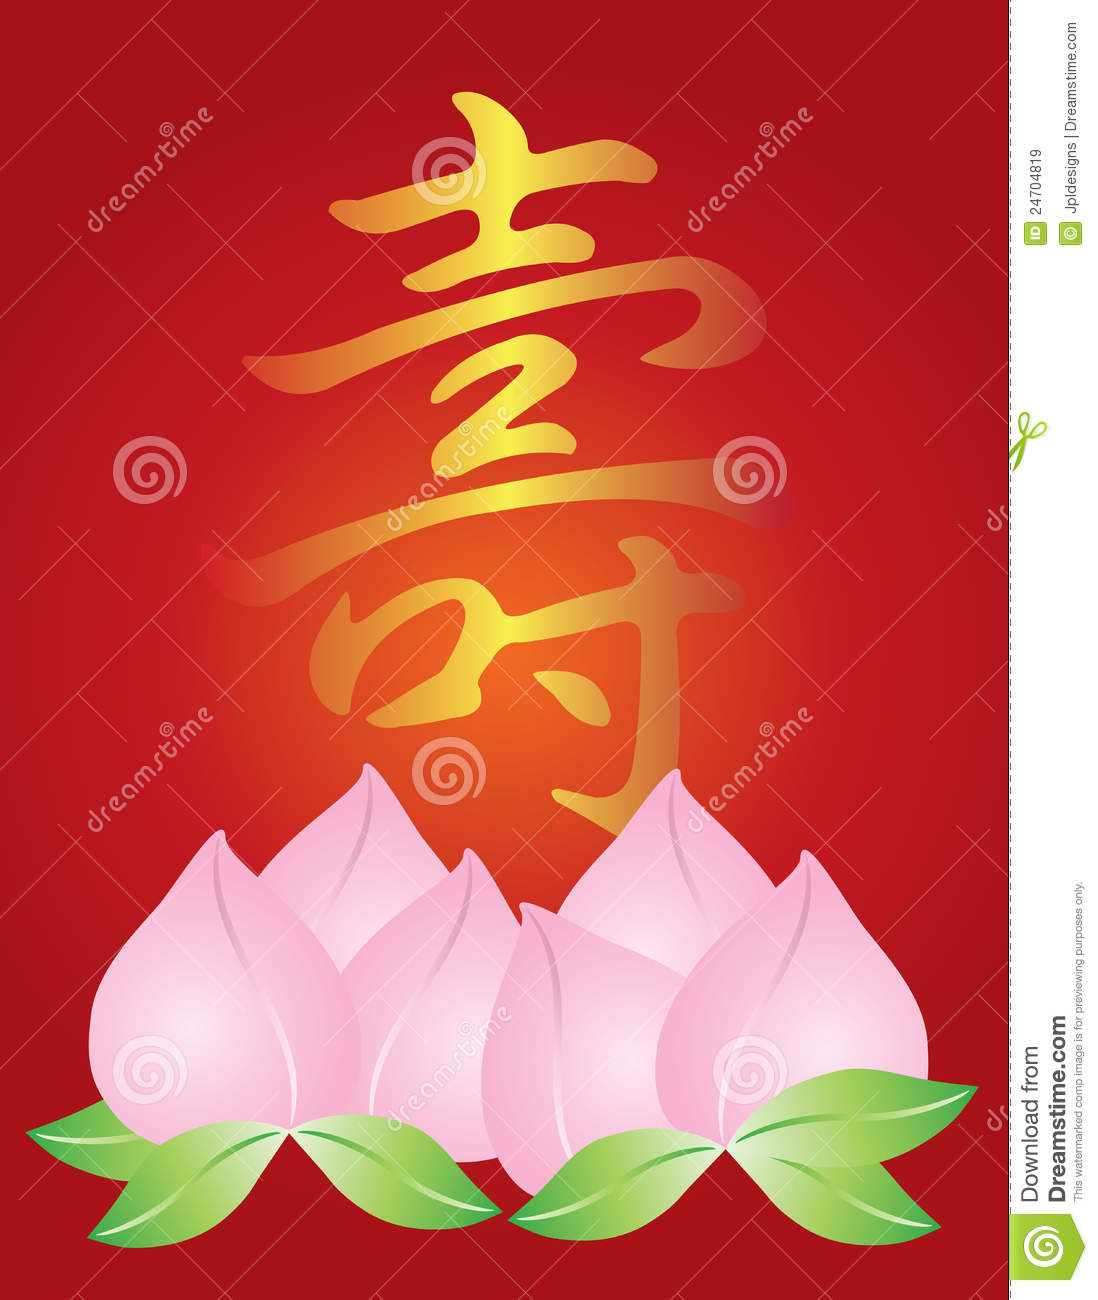 longevity birthday peach buns illustration royalty free stock images